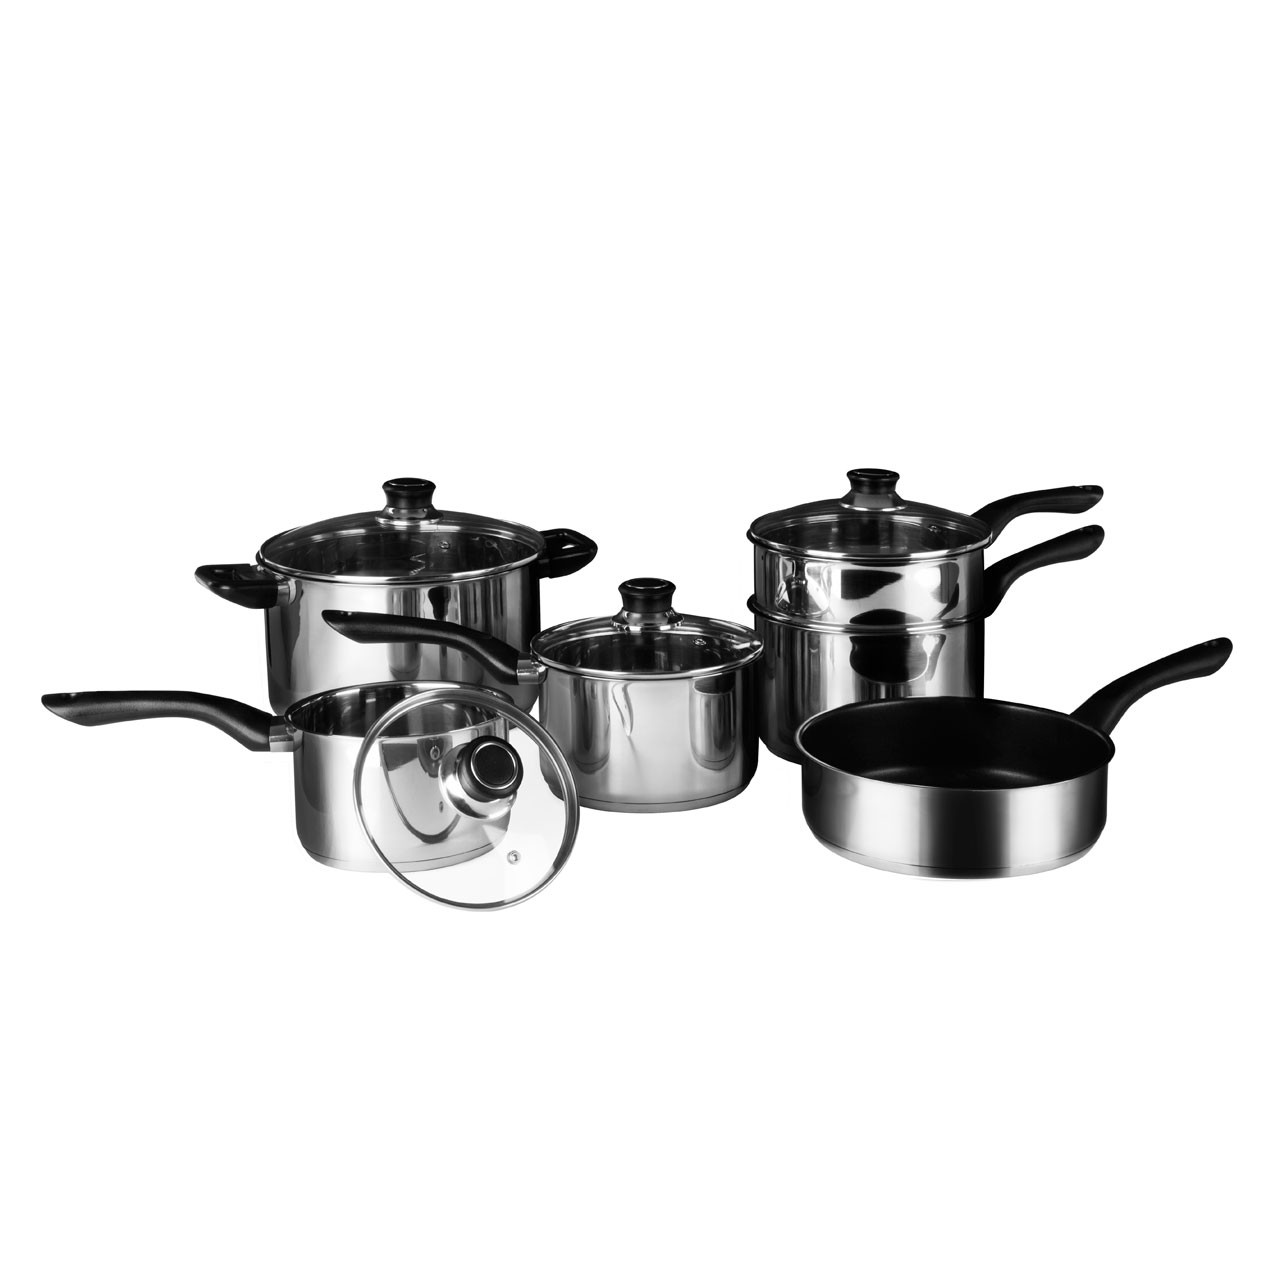 6pc Cookware Set Stainless Steel Bakelite Handles